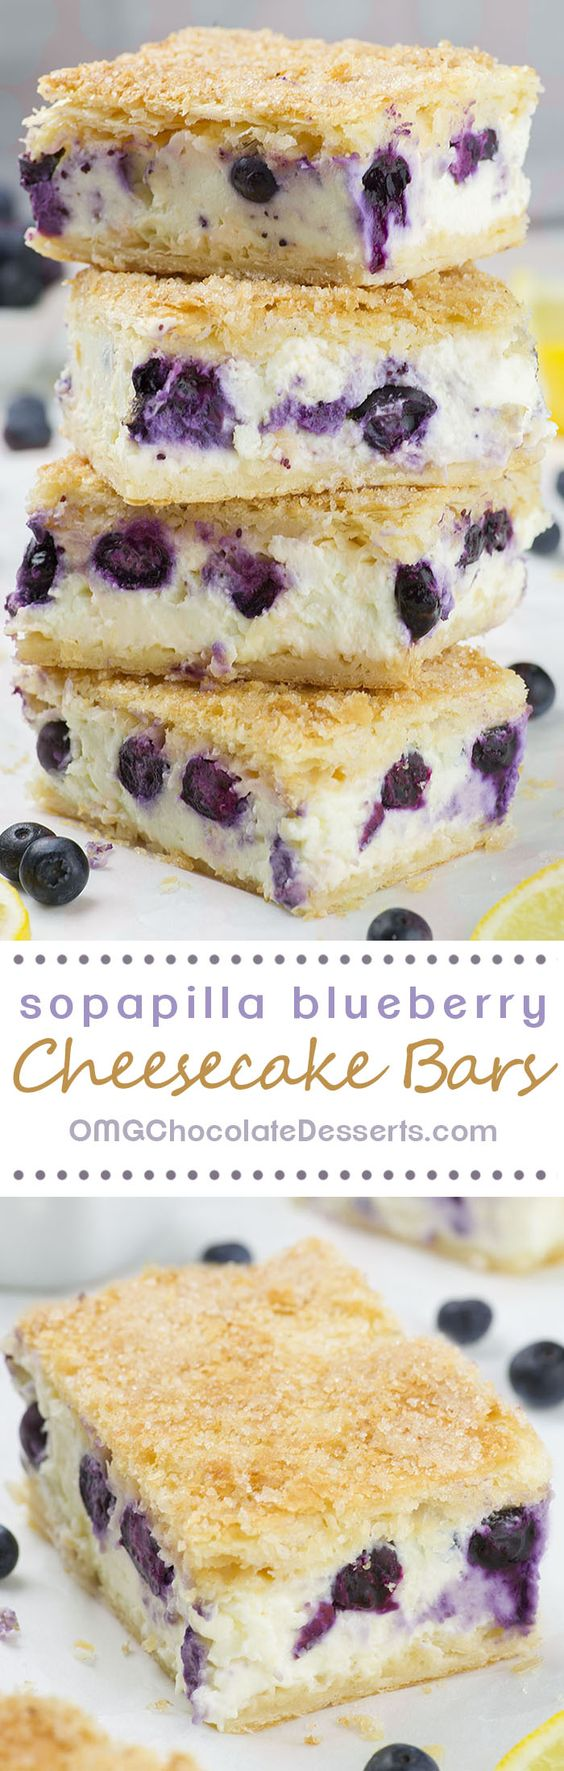 Sopapilla Blueberry Cheesecake Bars Dessert Recipe via OMG Chocolate Desserts - 5 minutes of prep time, 6 simple ingredients and the best Sopapilla Blueberry Cheesecake Bars you've ever tasted is ready! #dessertbars #cookiebars #barsrecipes #dessertforacrowd #partydesserts #christmasdesserts #holidaydesserts #onepandesserts